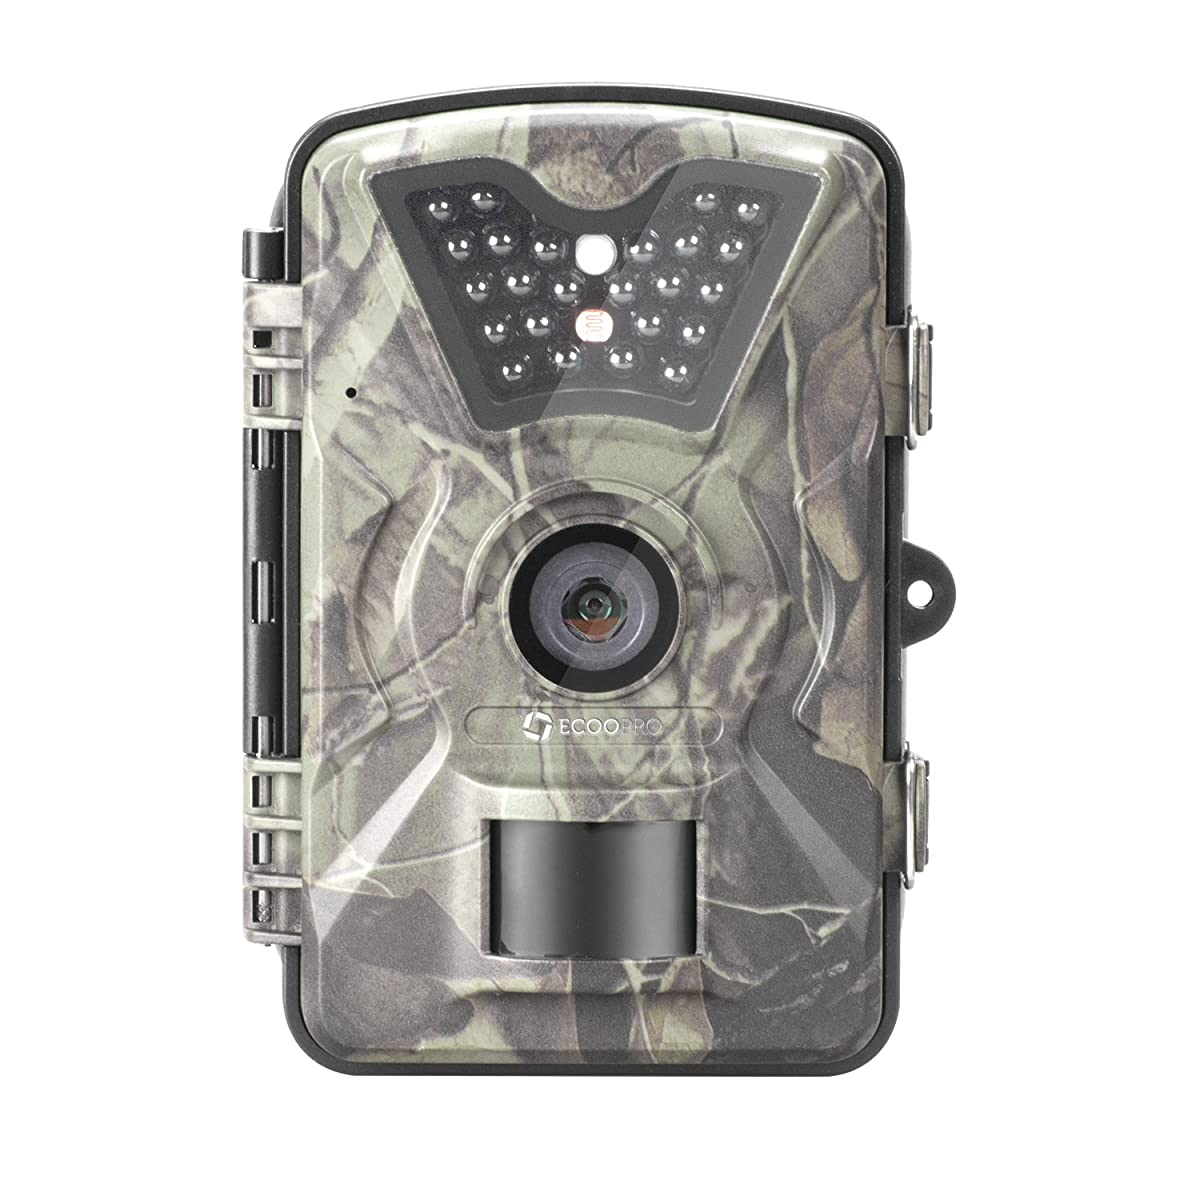 ECOOPRO 12MP 1080P HD Trail Camera Low-glow Game Hunting Camera with 65ft Night Vision & 90°Detection Angle